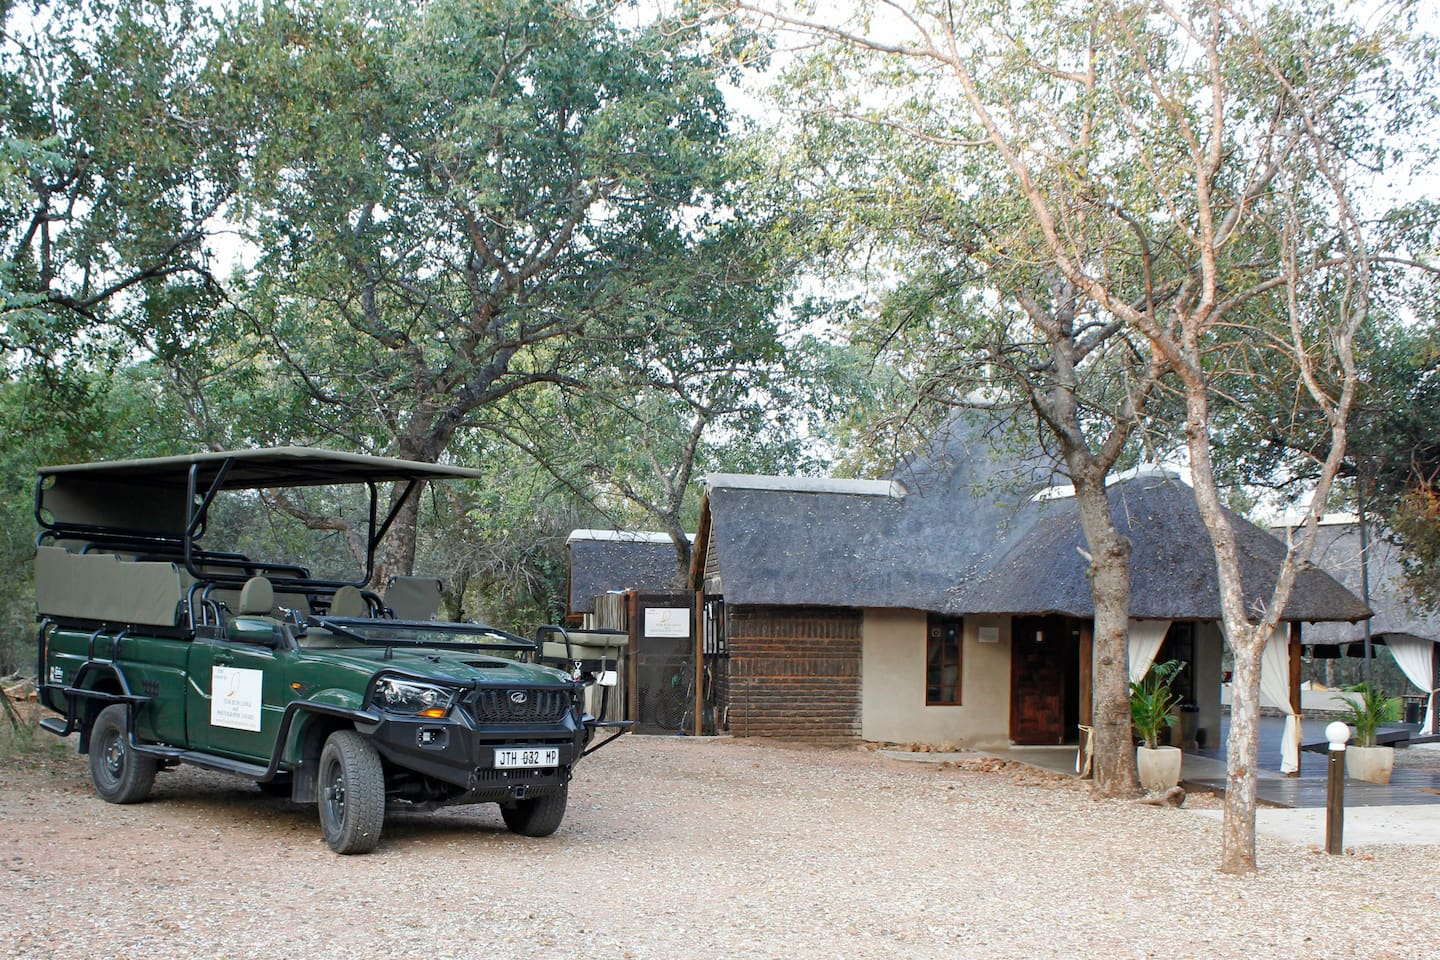 Open Vehicle Kruger Safaris & All-inclusive Kruger Packages with photographic safari ranger.